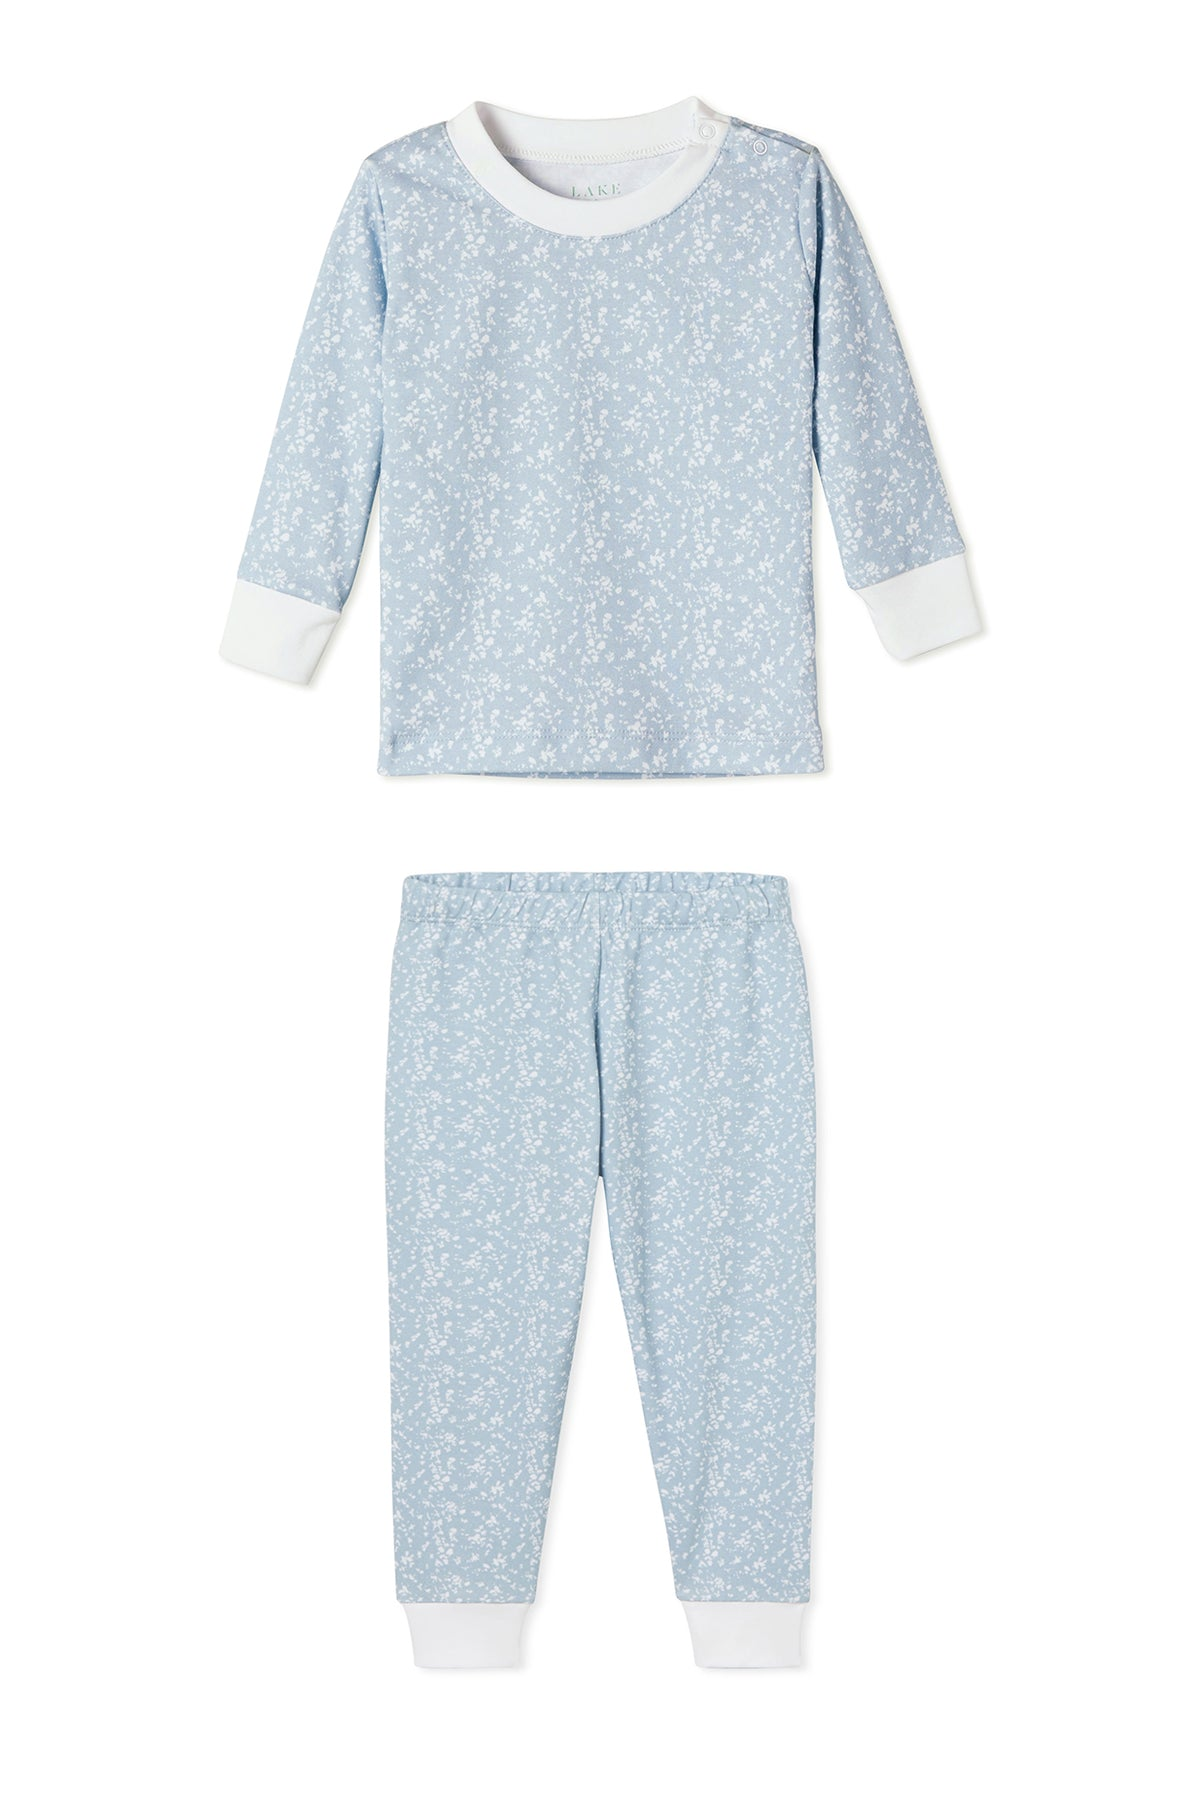 JB x LAKE Baby Long-Long Set in Blue Meadow